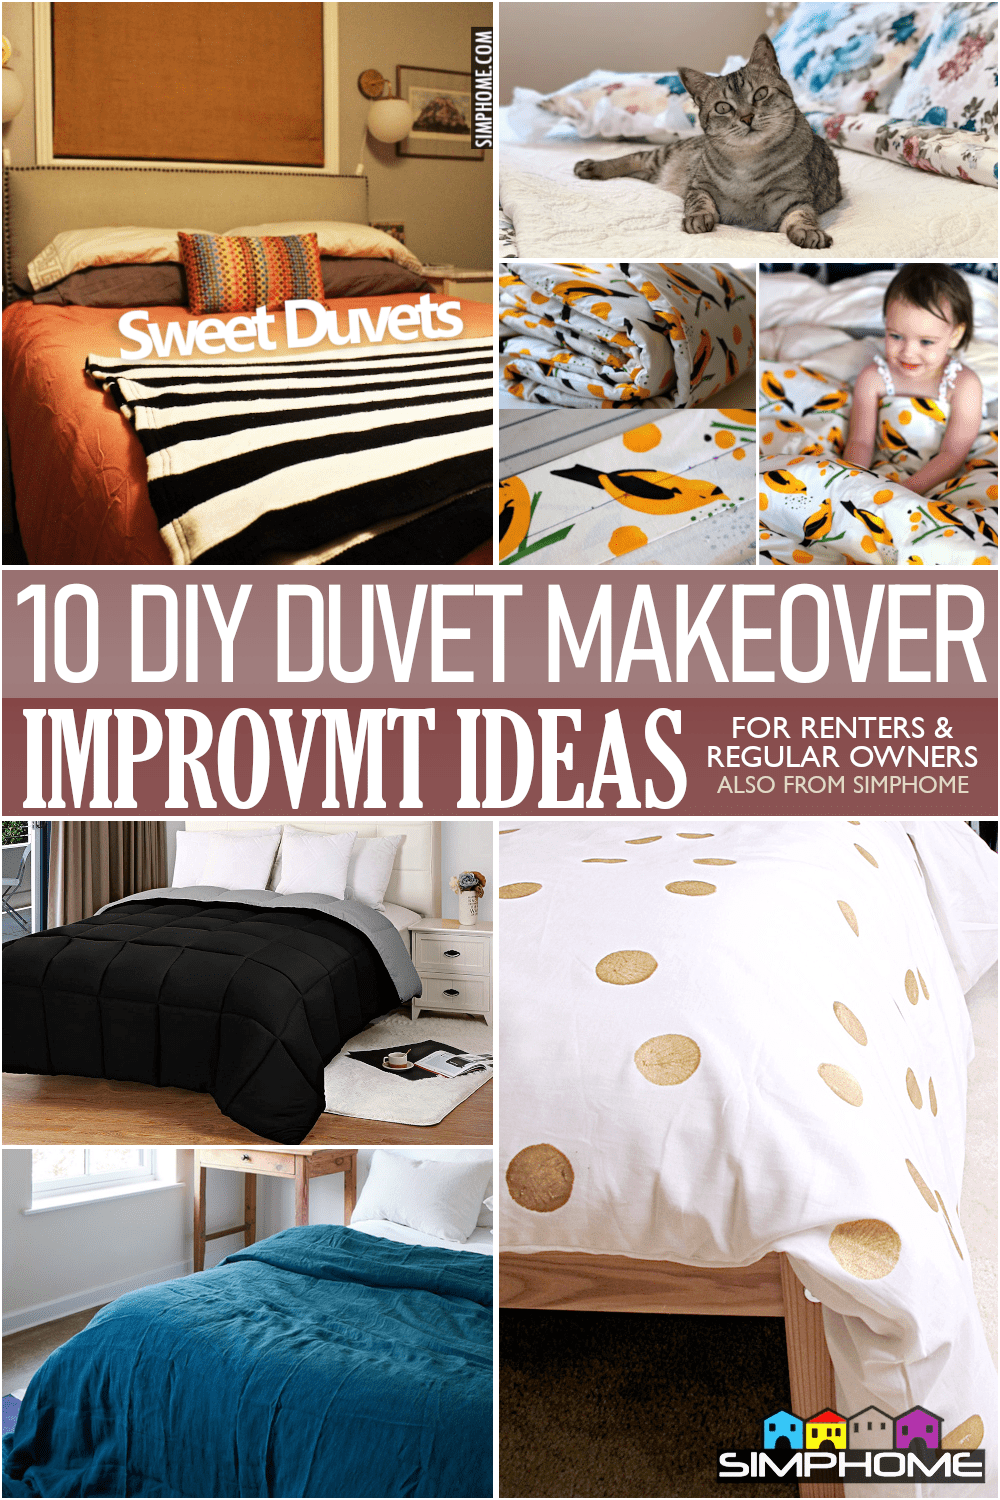 10 DIY Duvet Makeover with Sew and no Sews via Simphome.comFeatured